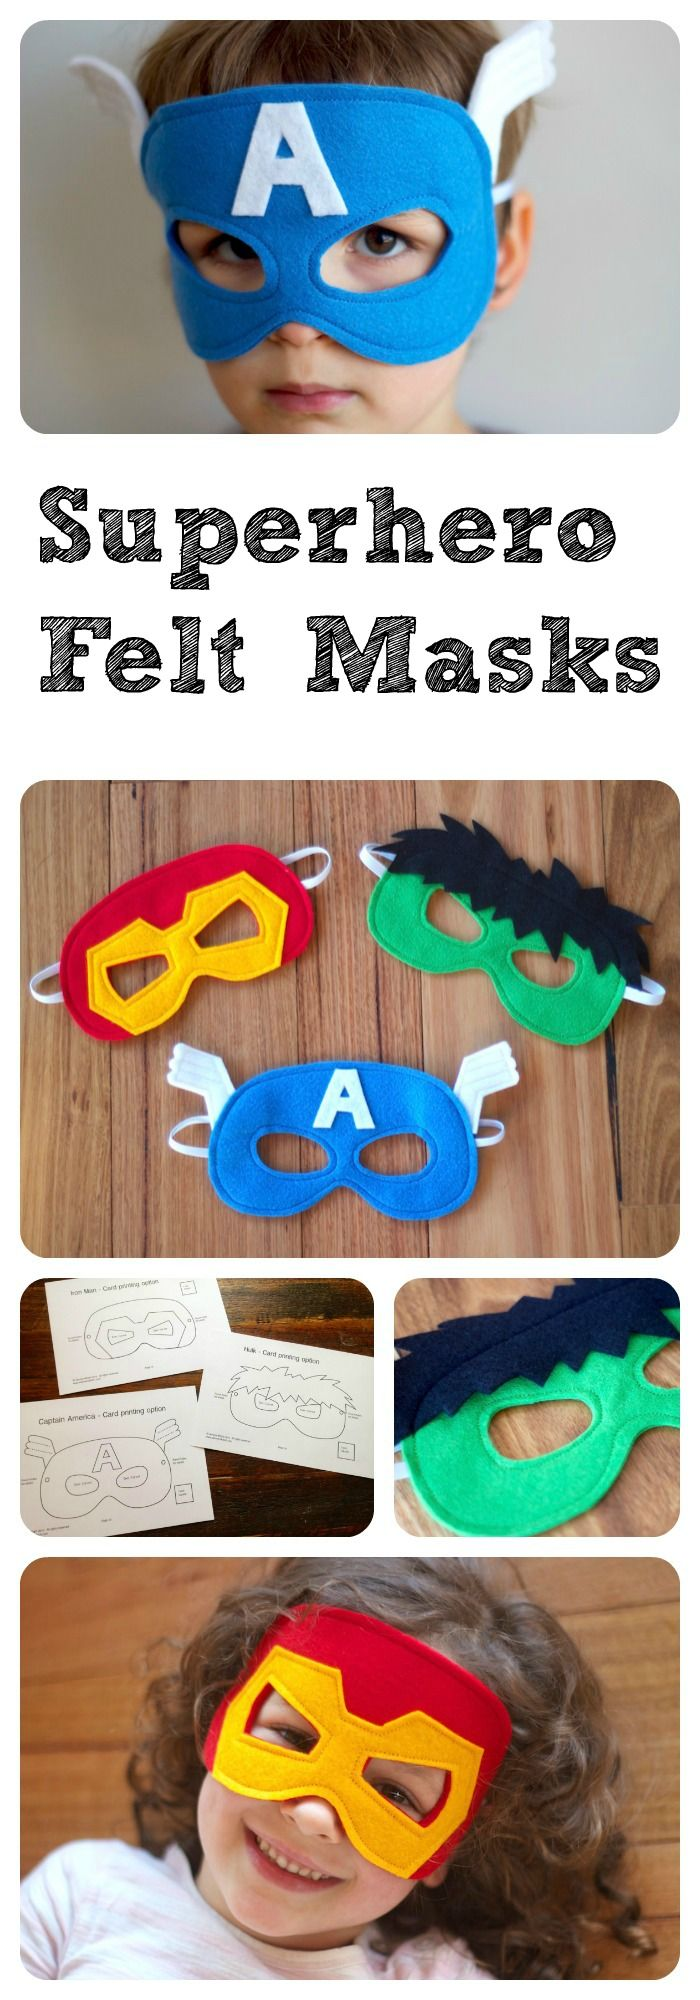 Superhero Felt Masks - A PDF sewing pattern - Captain America, Hulk and Ironman